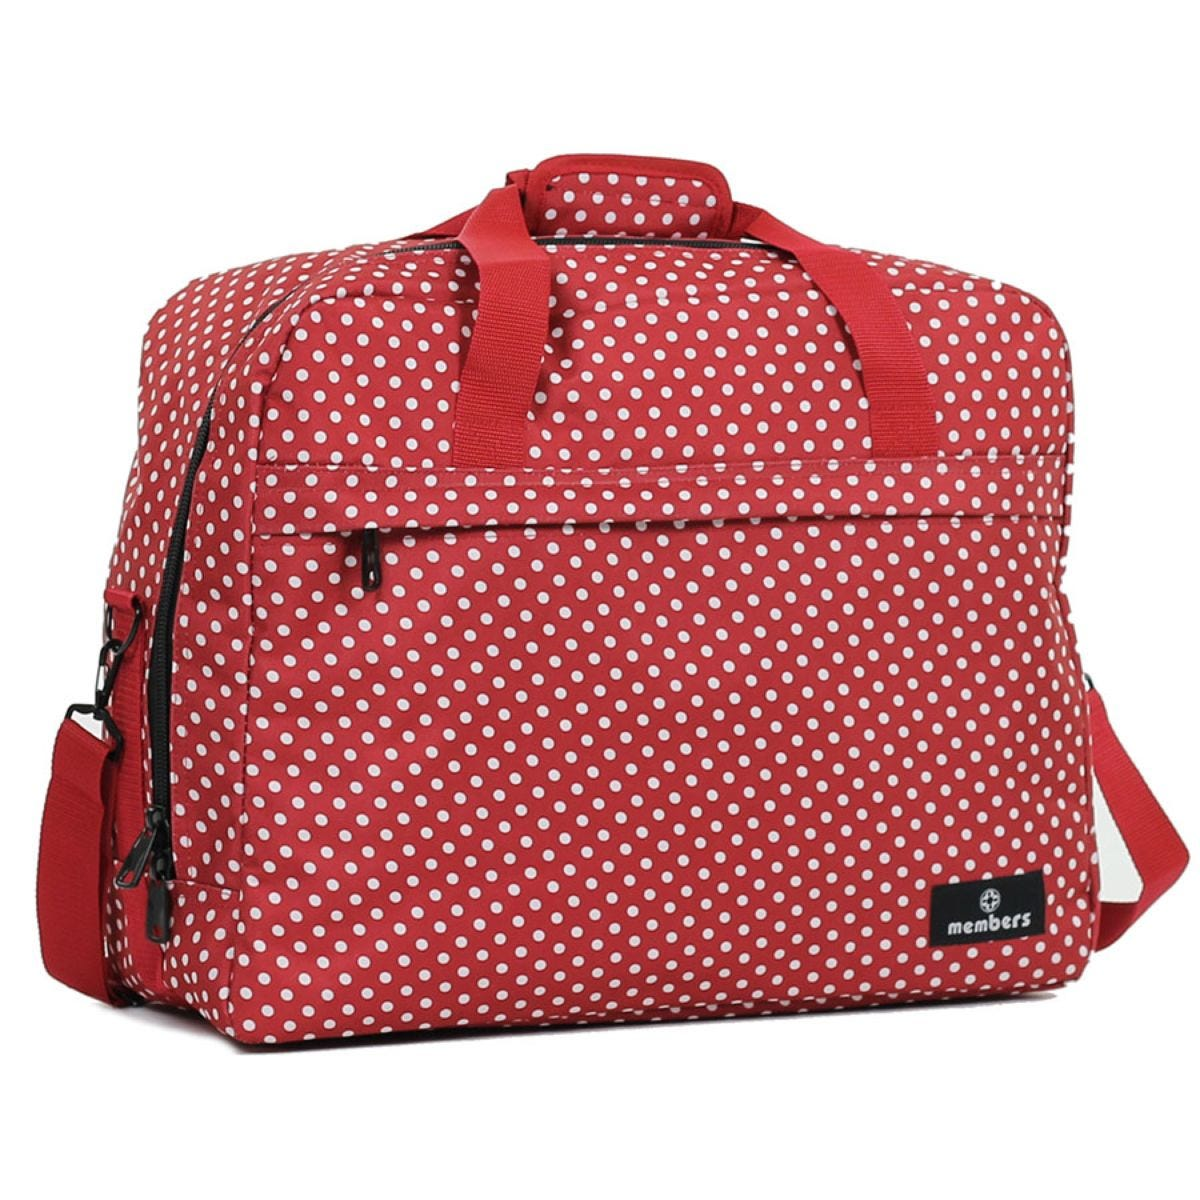 Members by Rock Luggage Essential Carry-On Travel Bag - Red Polka Dots